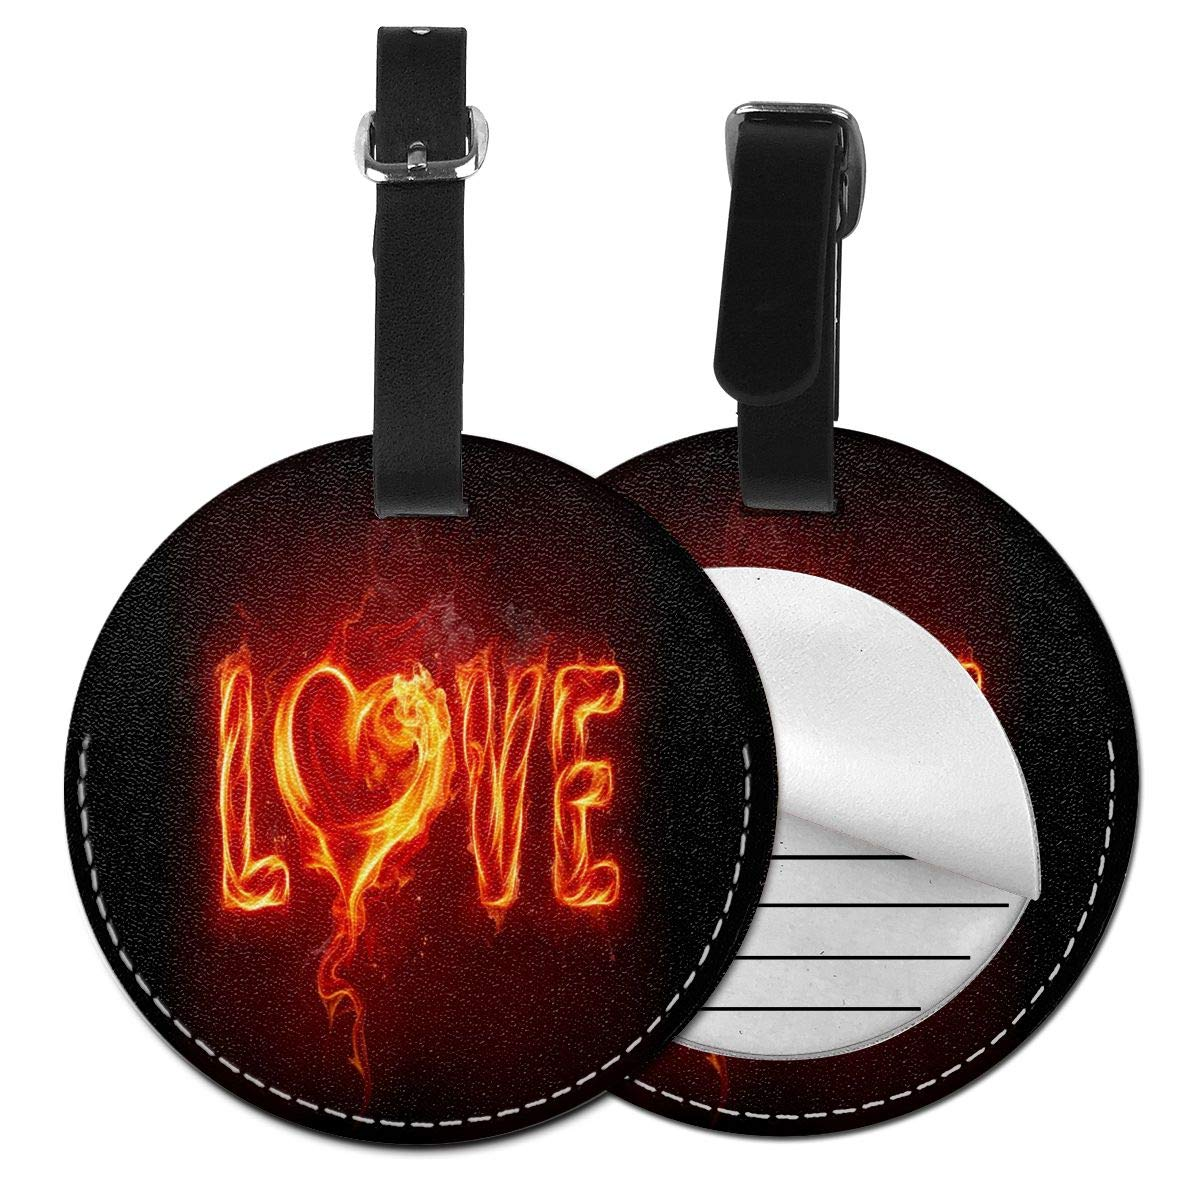 Flame Valentine's Day Round Leather Luggage Id Tag Suitcase Carry-on Travel Accessories 4 Pack by Rachel Dora